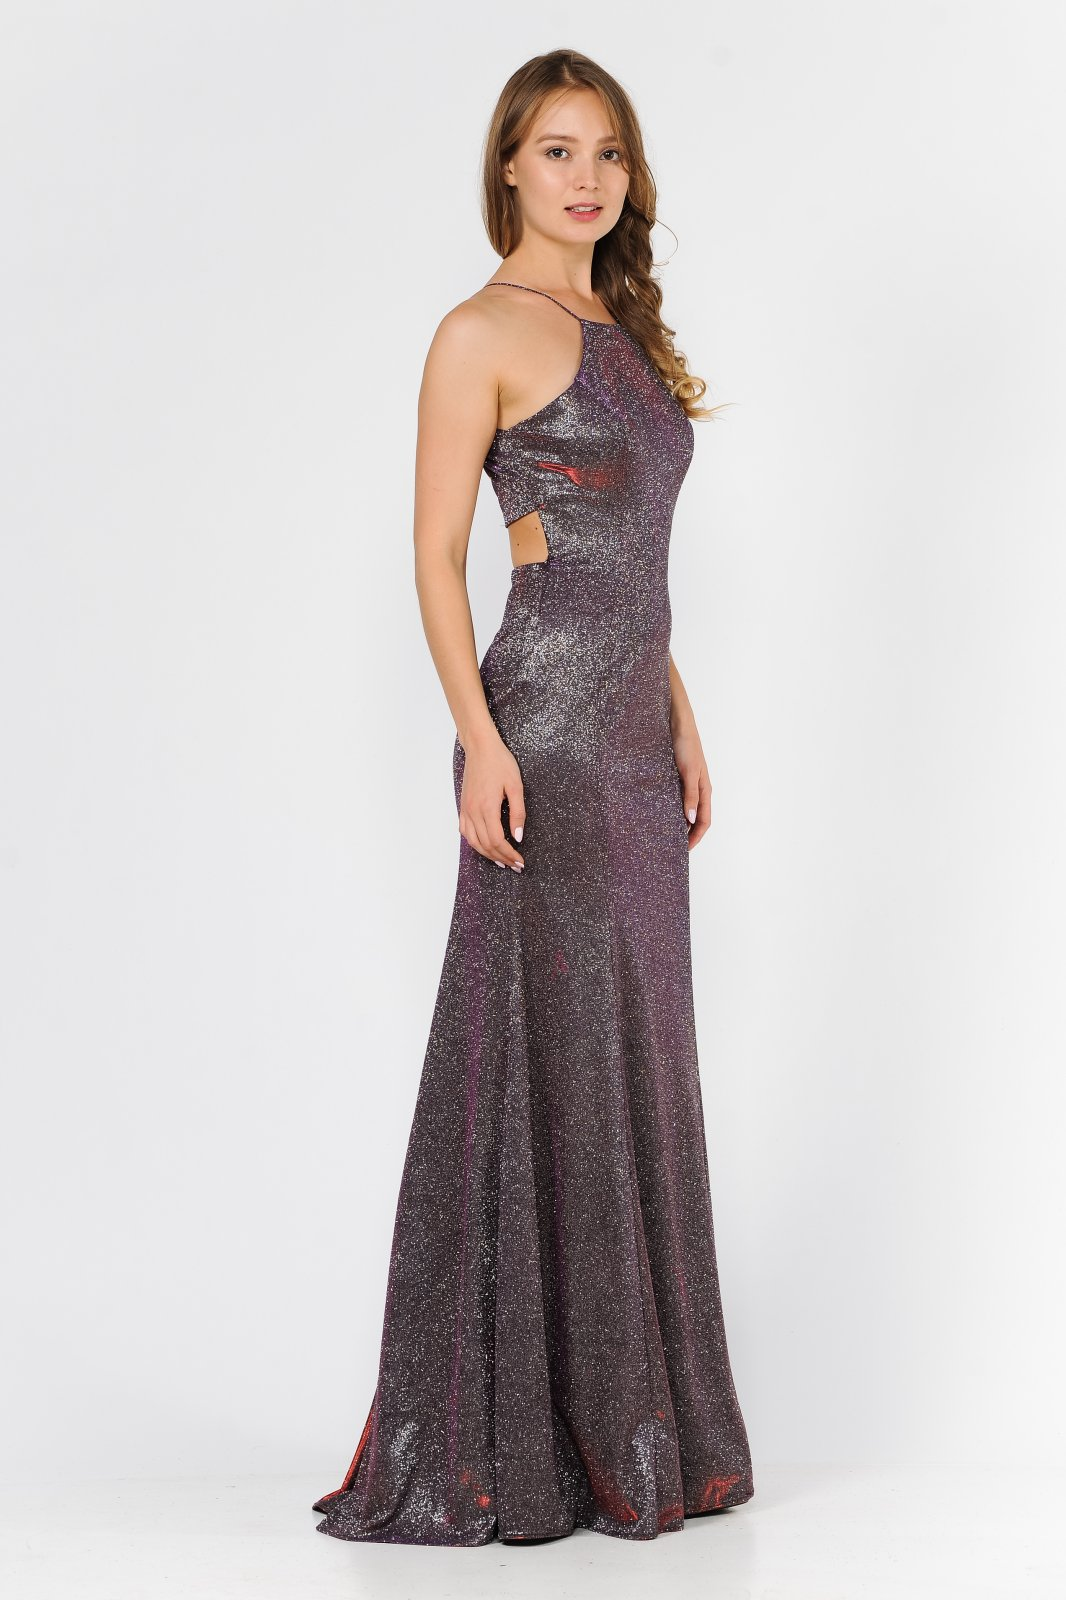 Long Magenta metallic glitter dress with halter neck and sexy back cutout.